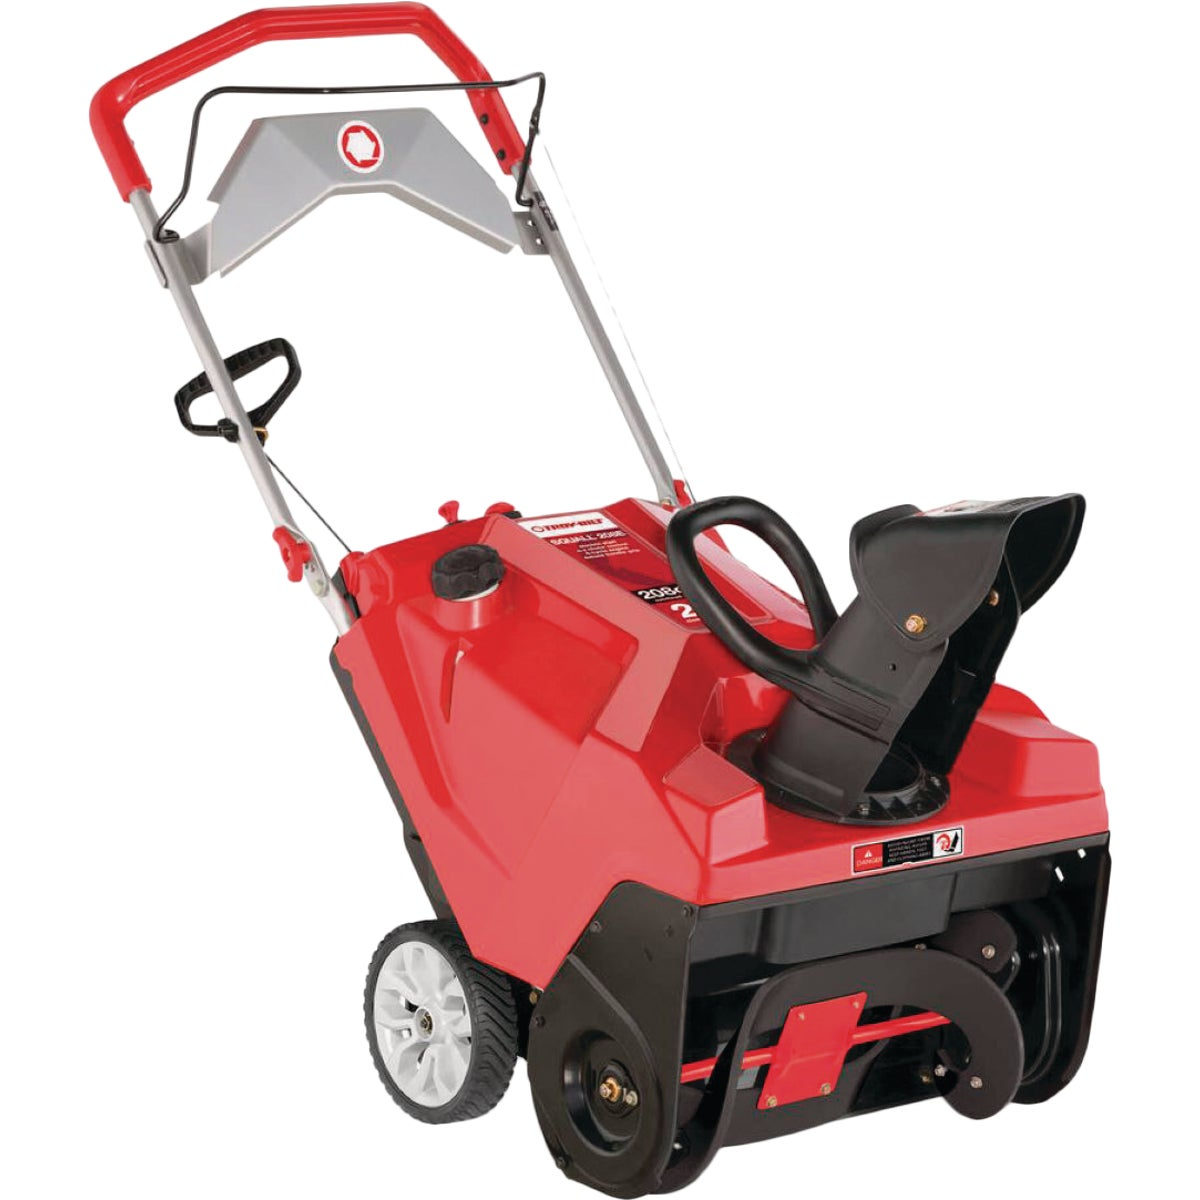 Troy-Bilt Squall 2100 21 In. 4-Cycle Gas Snow Blower, 31AS2T7G766